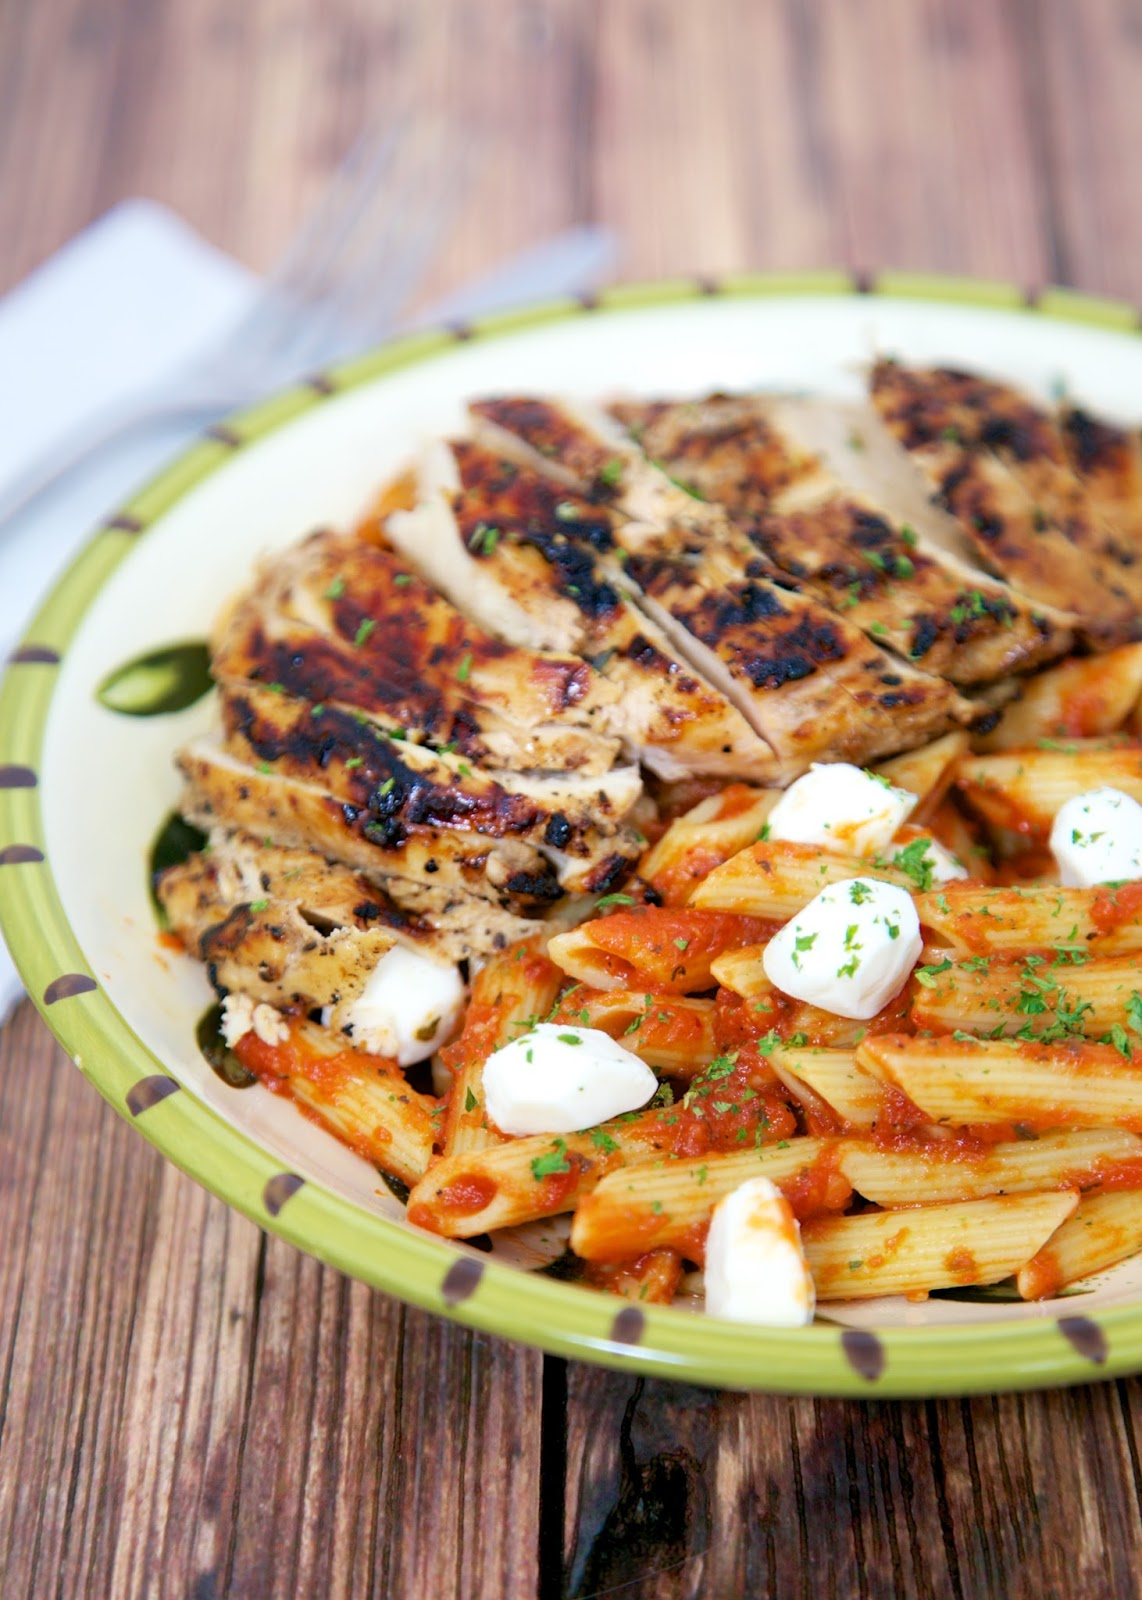 Grilled Chicken Caprese Pasta - balsamic marinated chicken over pasta and fresh mozzarella - all the flavors of your favorite salad in a pasta dish!